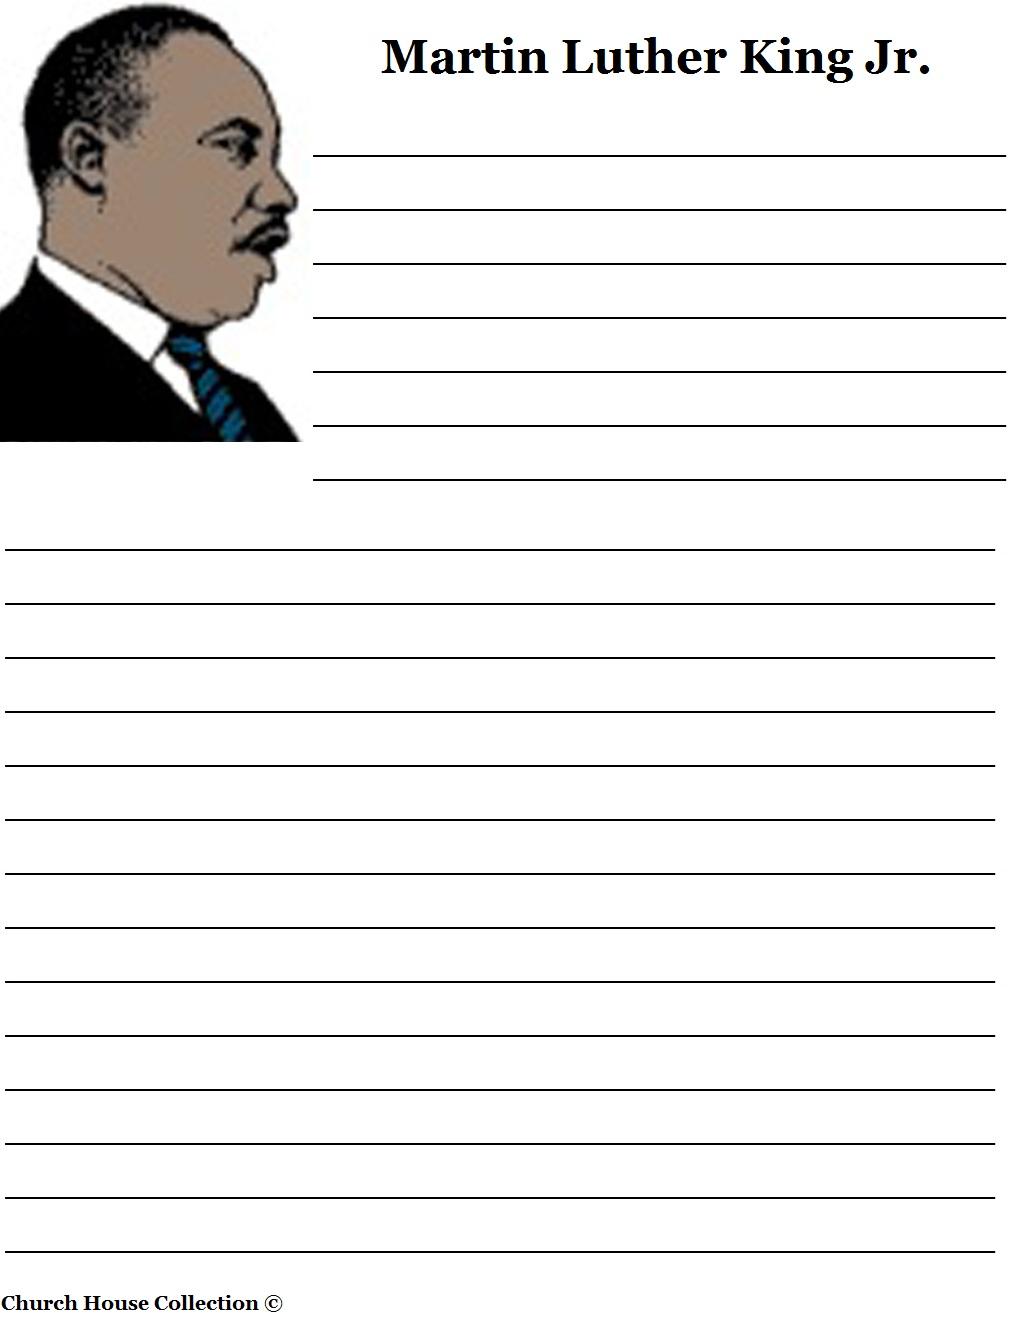 worksheet martin luther king worksheets worksheet  martin luther king jr coloring pages printable quote dr for activities worksheets kids mlk preschoolers page pdf